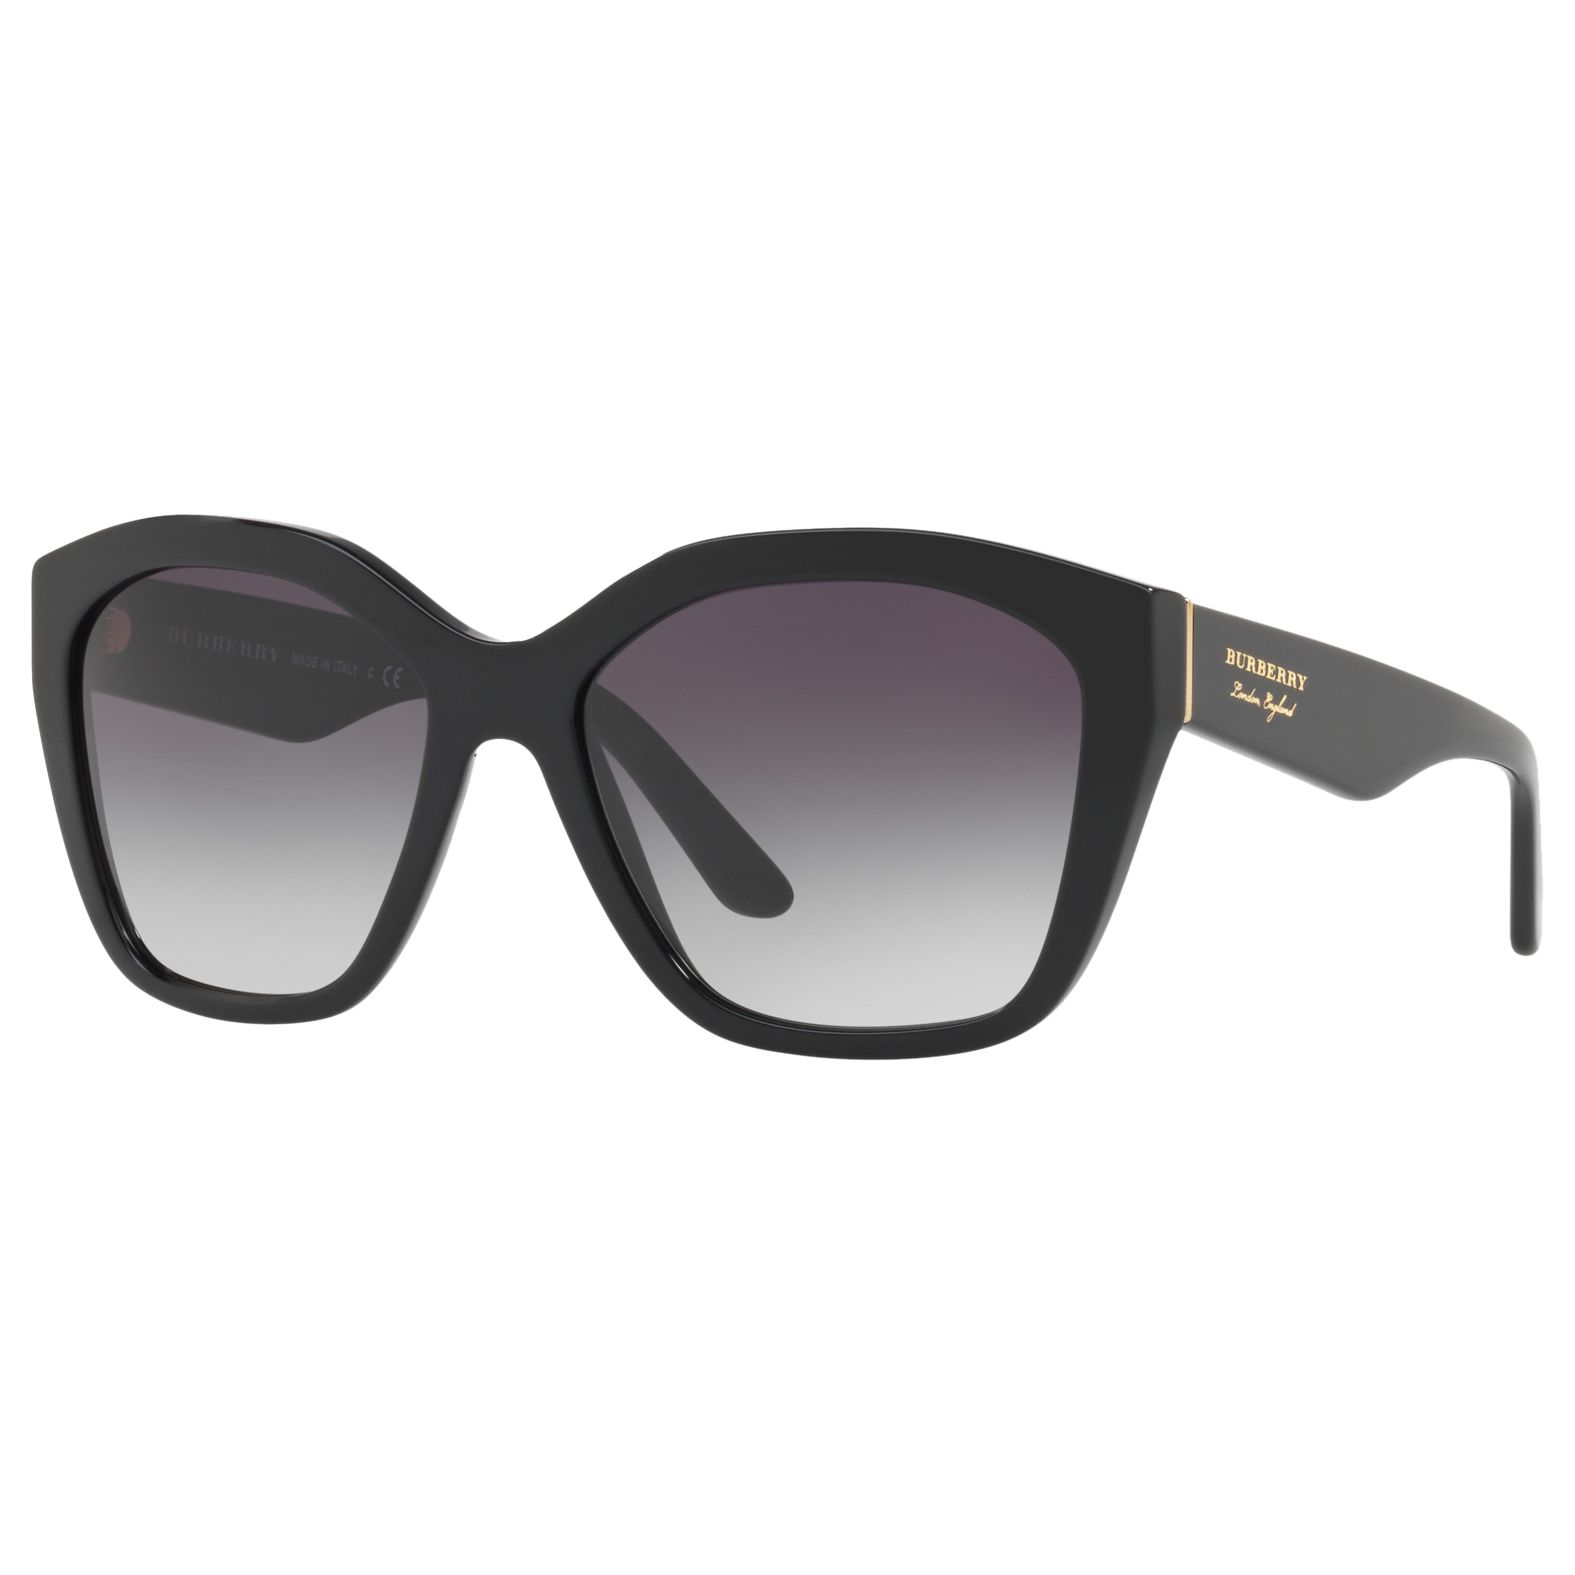 Burberry Burberry BE4261 Square Sunglasses, Black/Grey Gradient